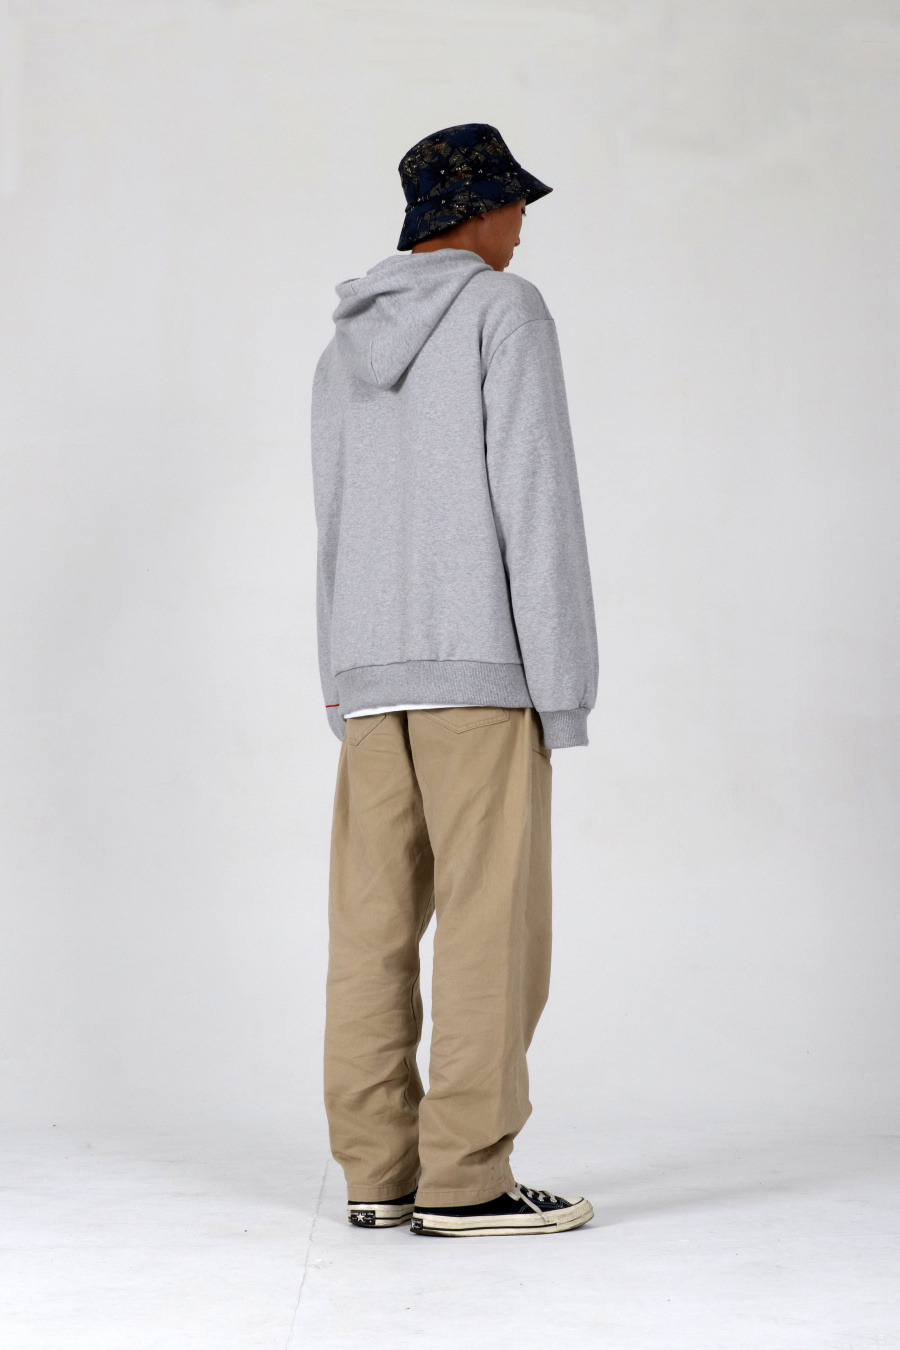 [13블루스] 13BLUES pil emb hoody grey